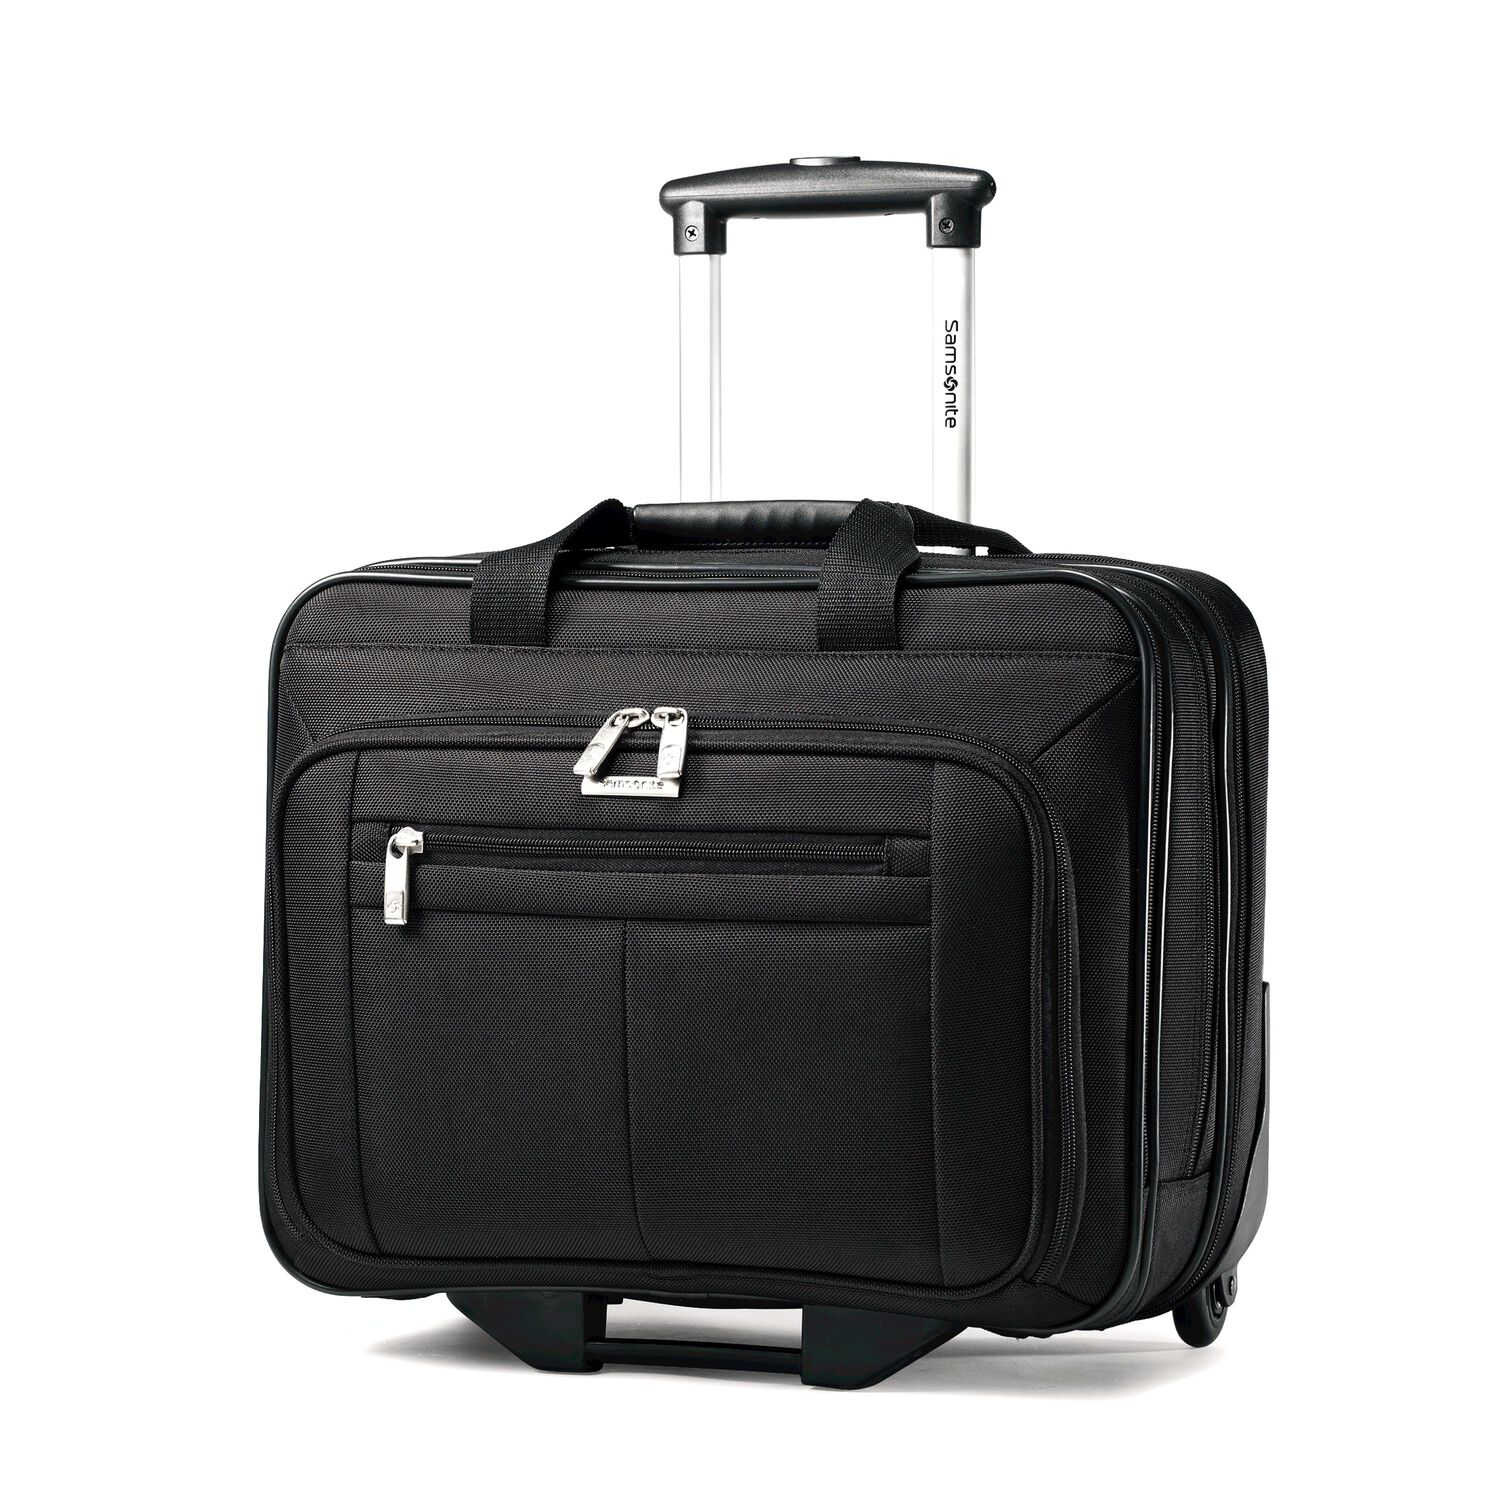 419e81cb09a Samsonite Classic Business Wheeled Business Case in the color Black.